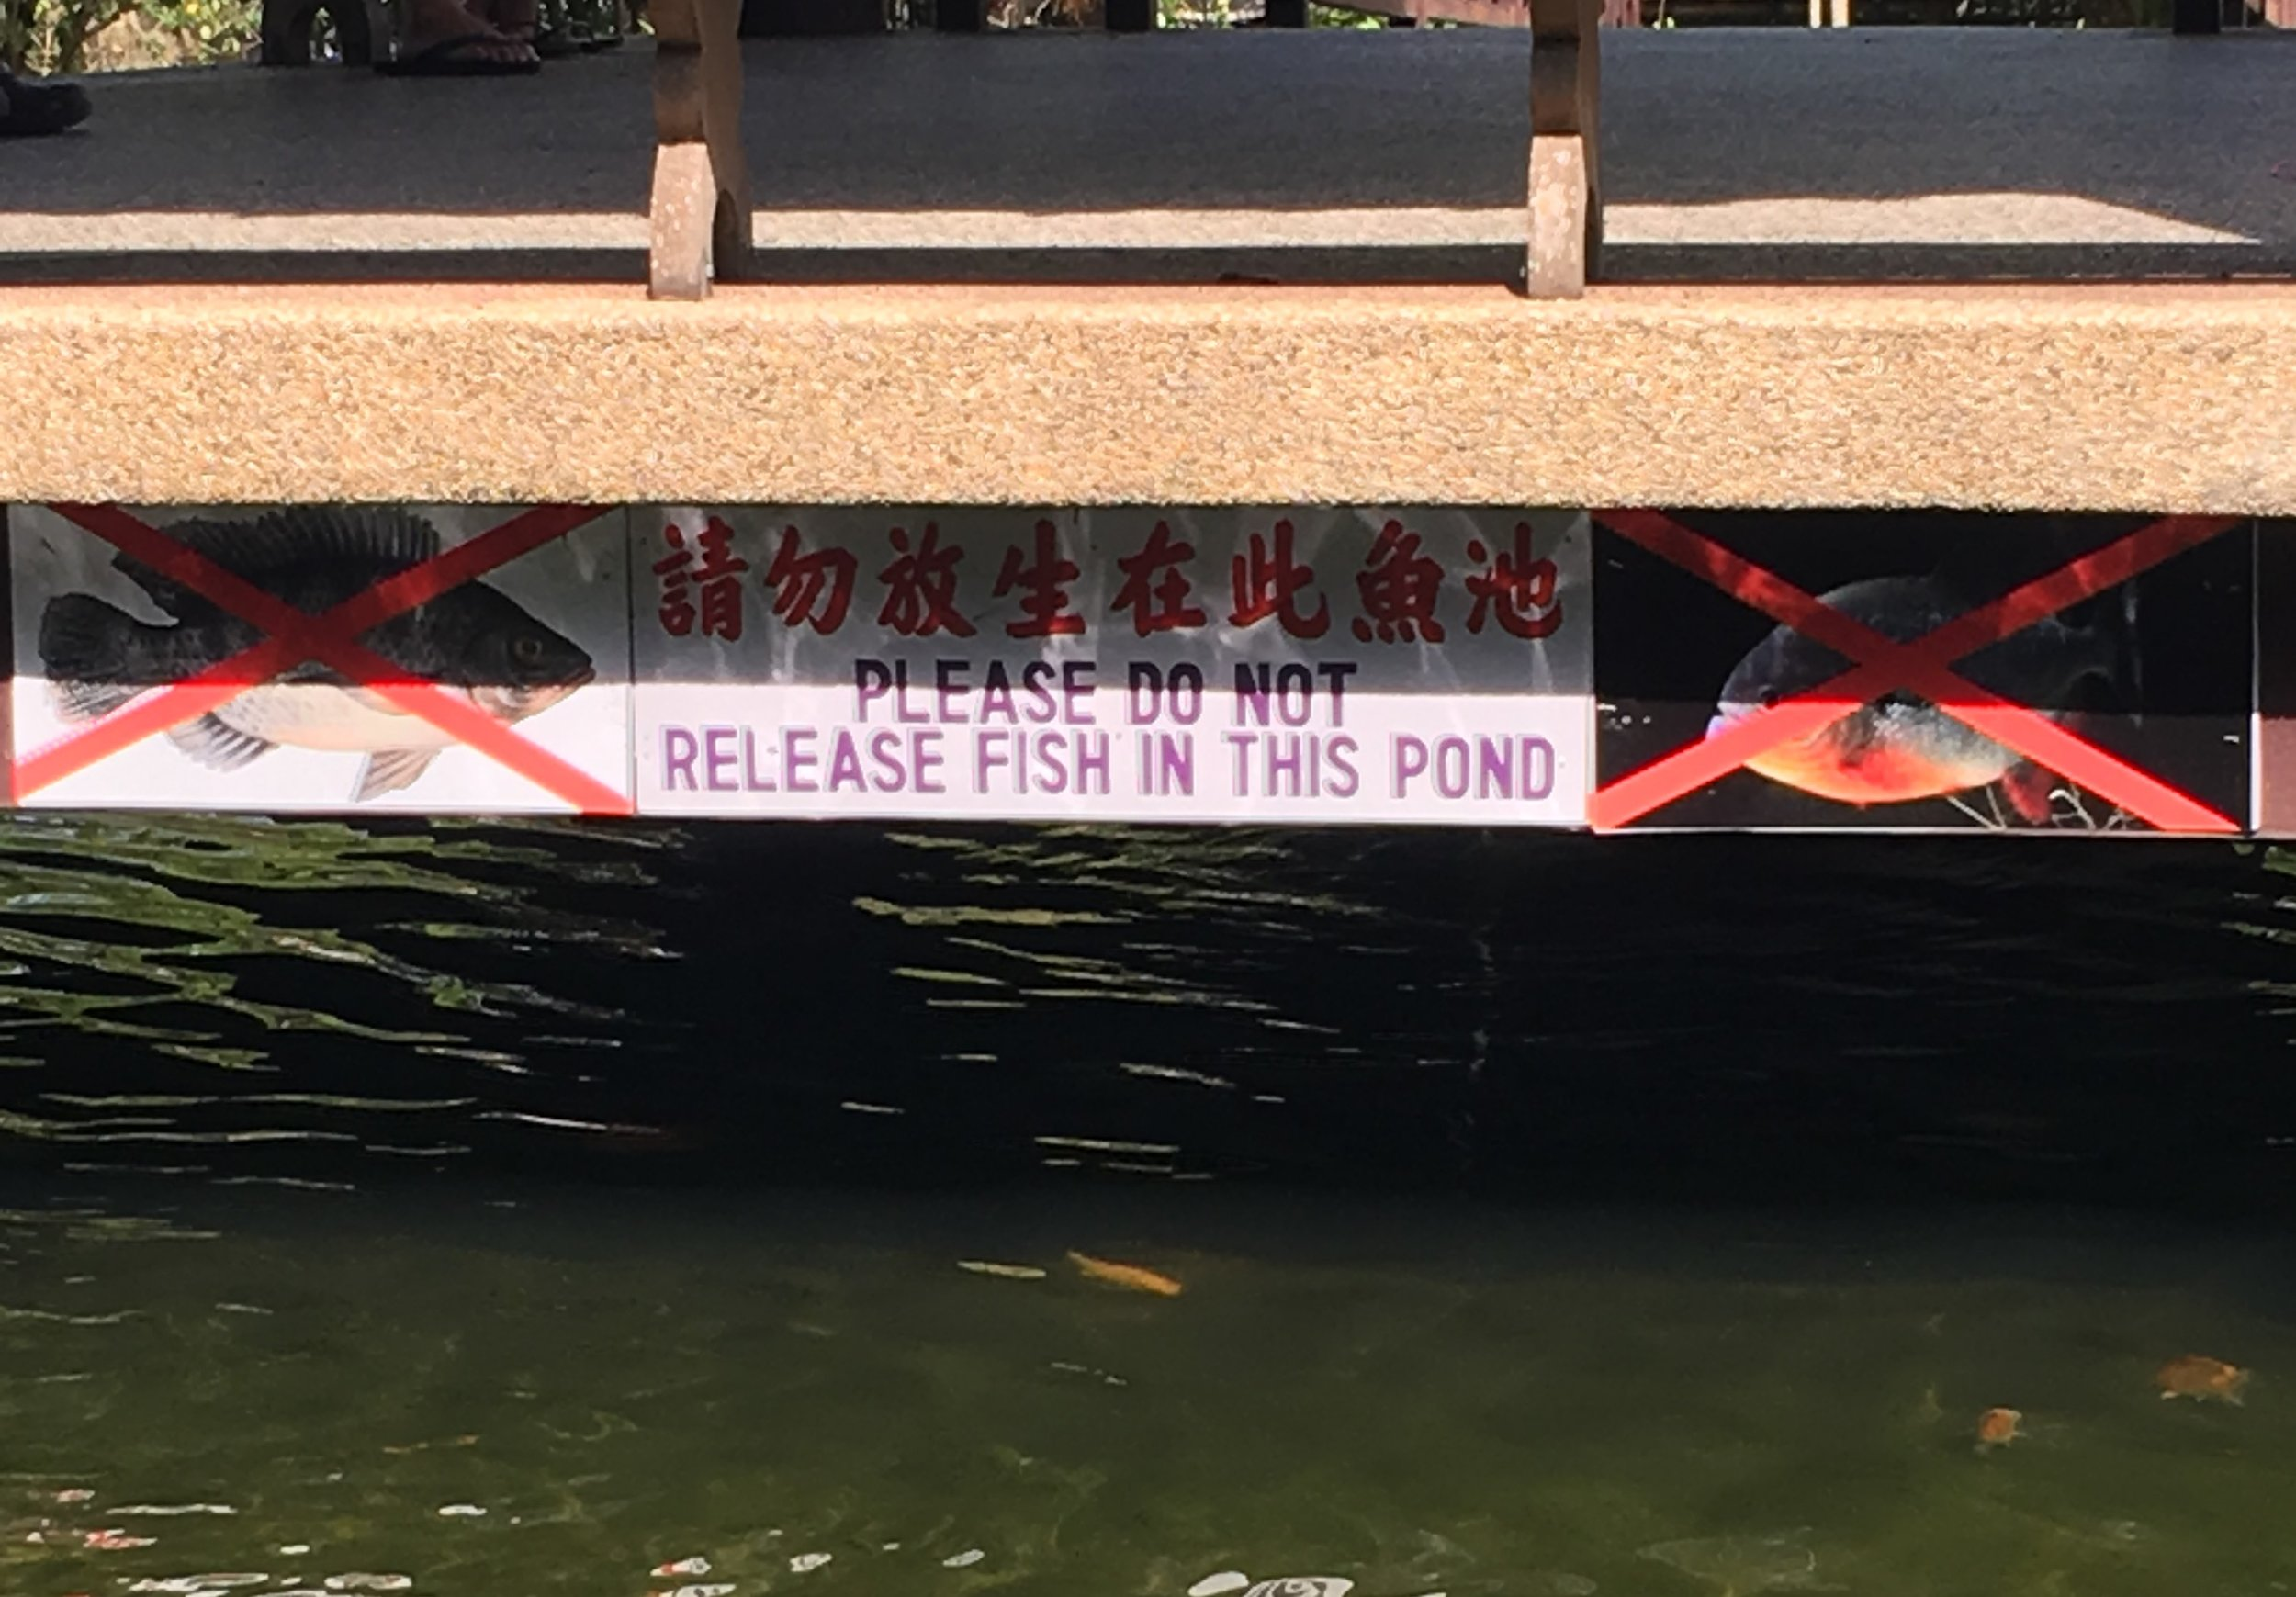 Well, where am I supposed to release my fish then?! Penang, Malaysia.